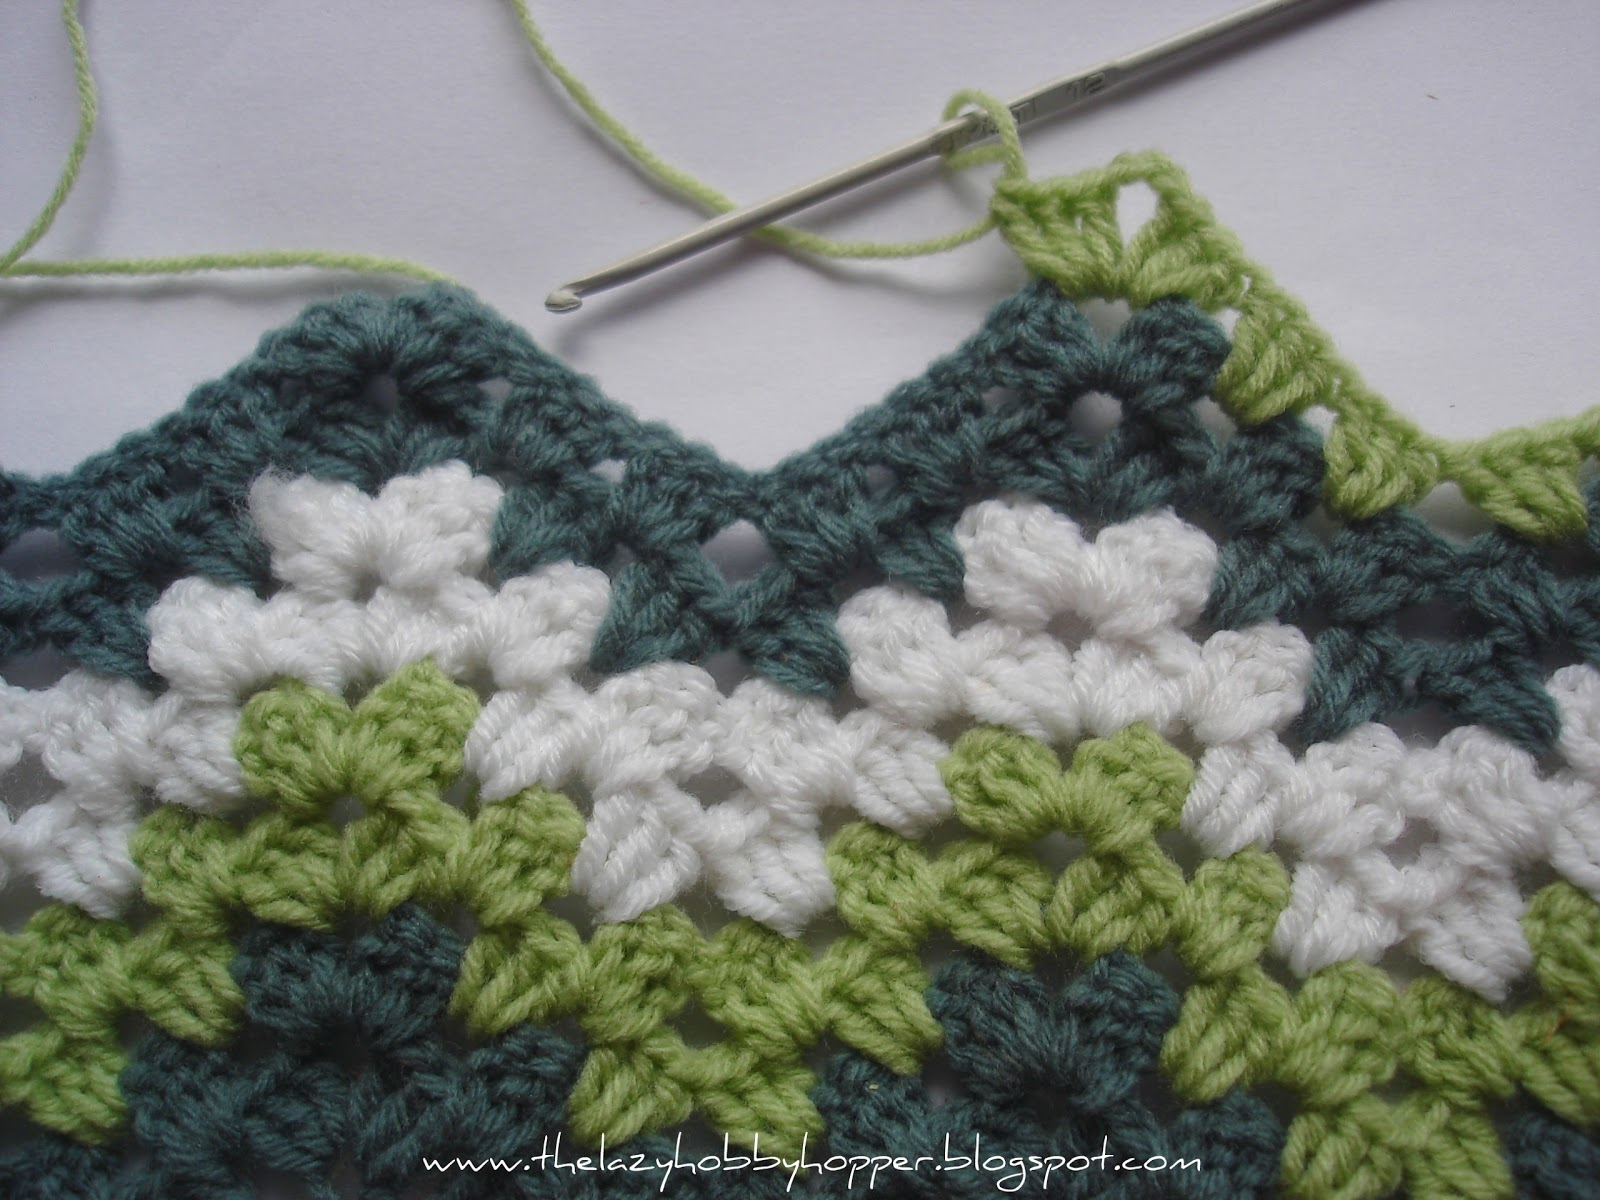 Crocheting Directions : ... many of you who can crochet fairly well may not know how to crochet a